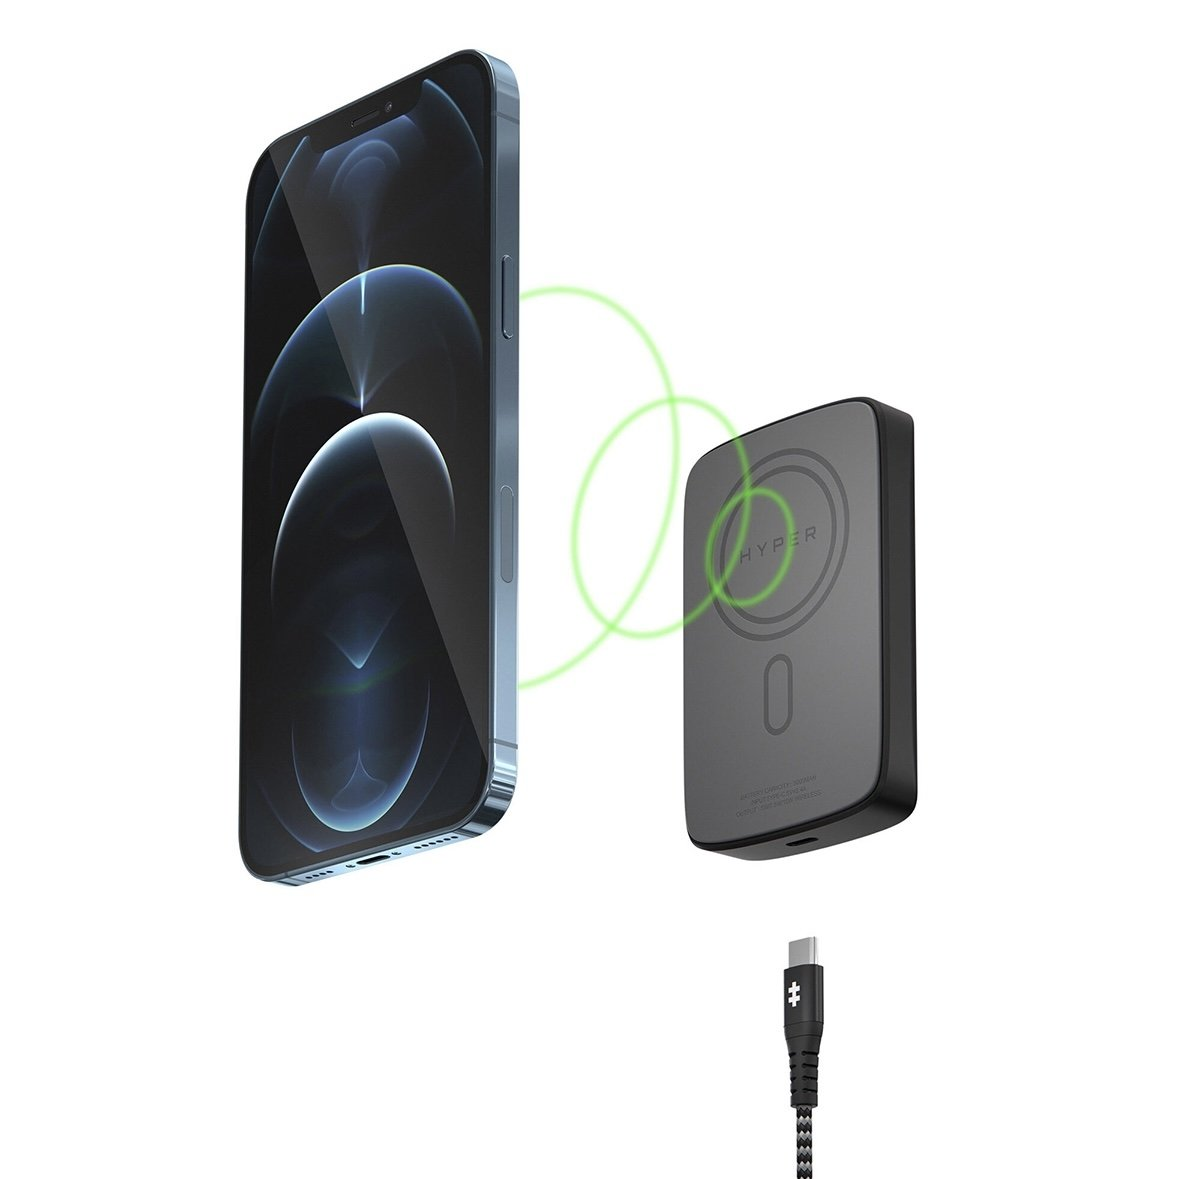 MagSafe helps align the Qi wireless charger